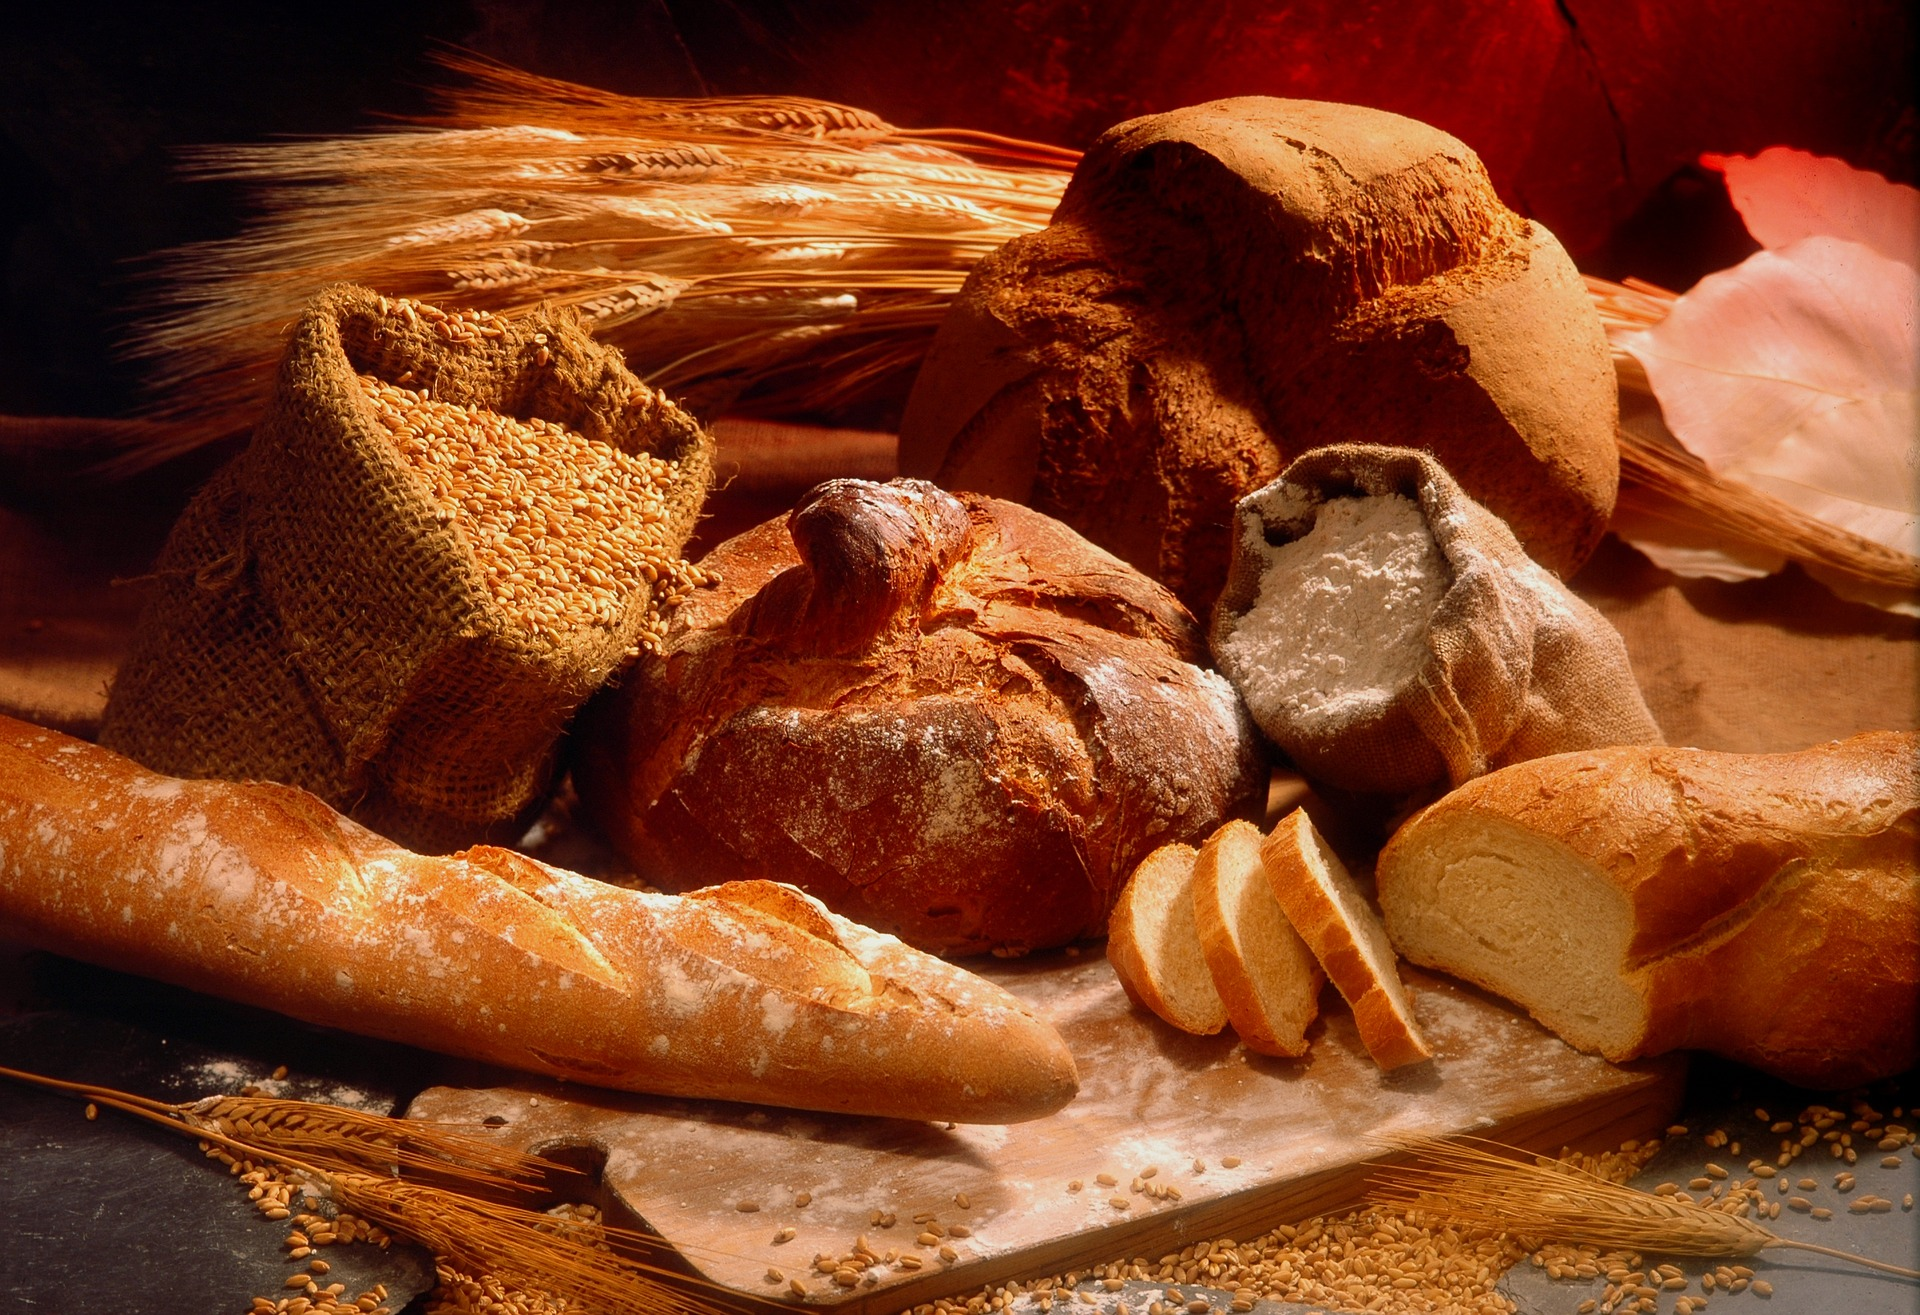 A Bread Insensitivity For Me Means To Live Pain Free, I Choose to Be Wheat-Free